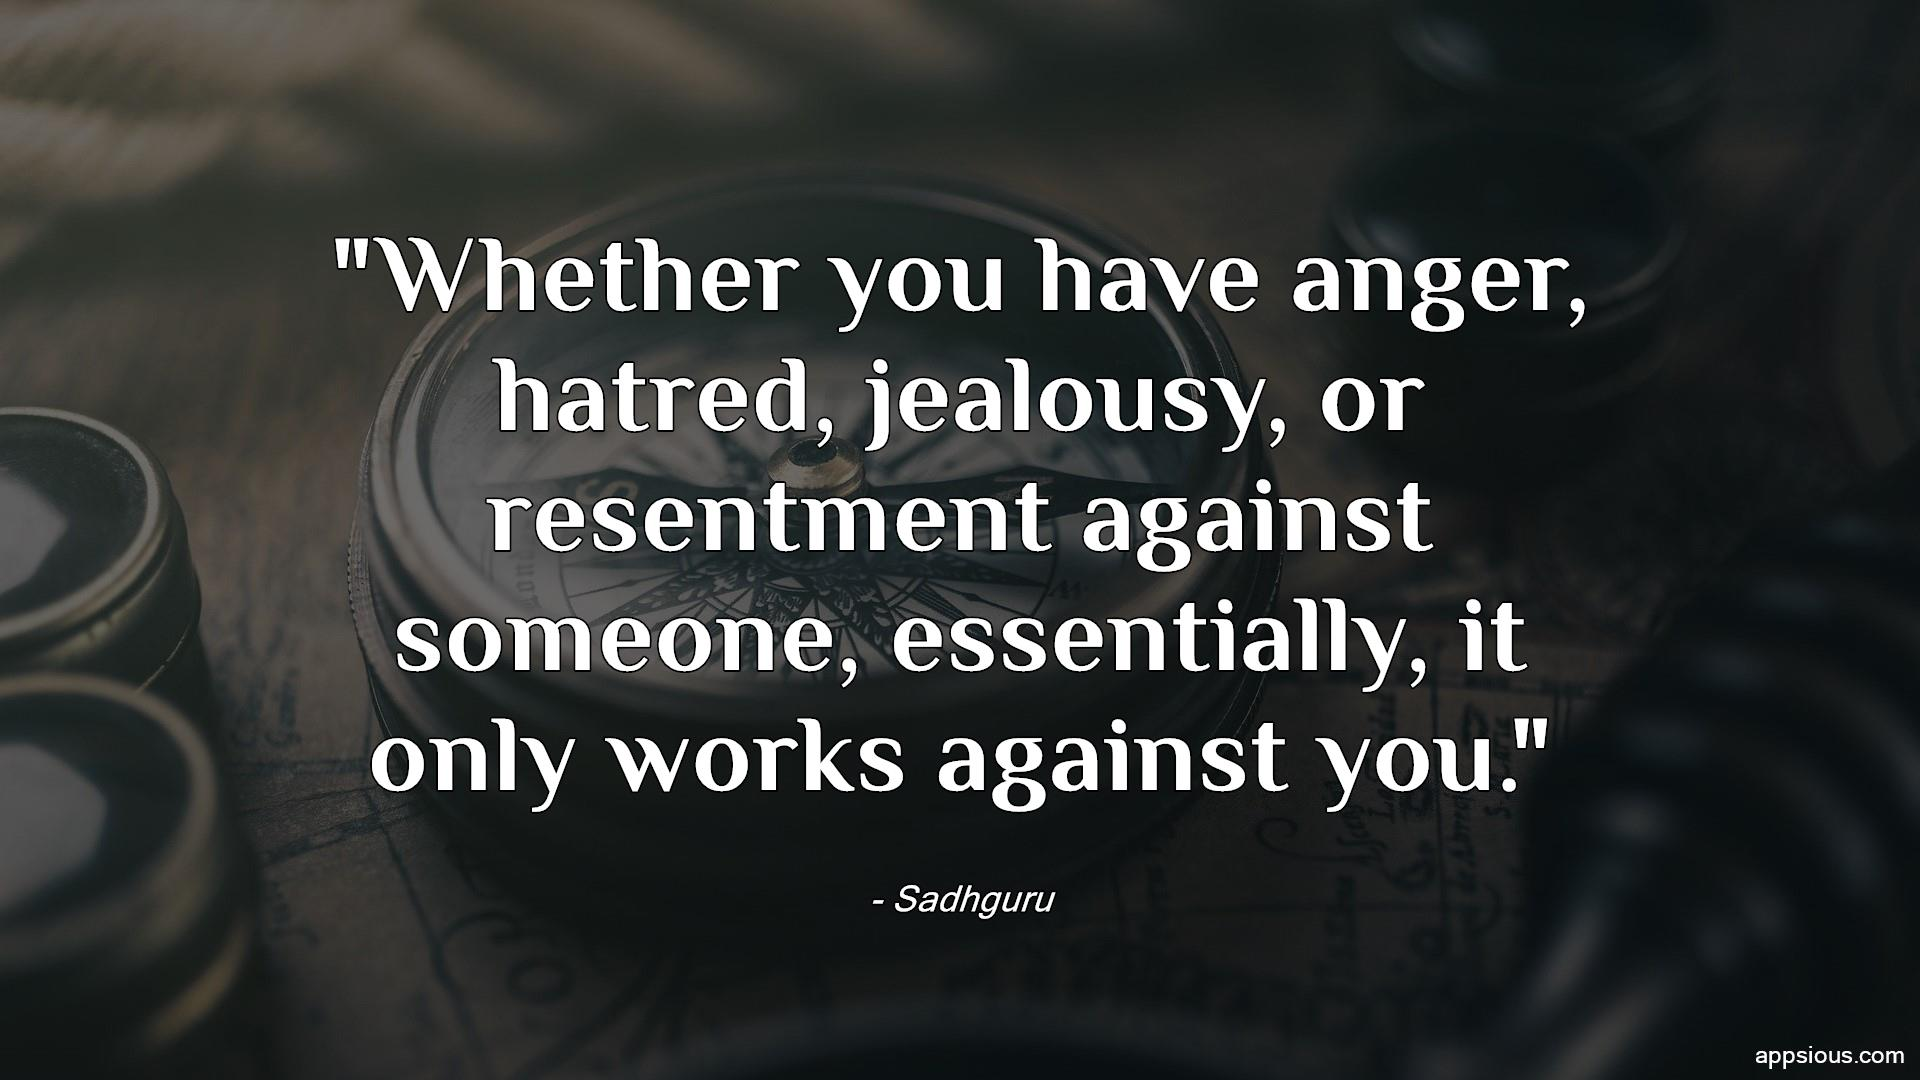 Whether you have anger, hatred, jealousy, or resentment against someone, essentially, it only works against you.